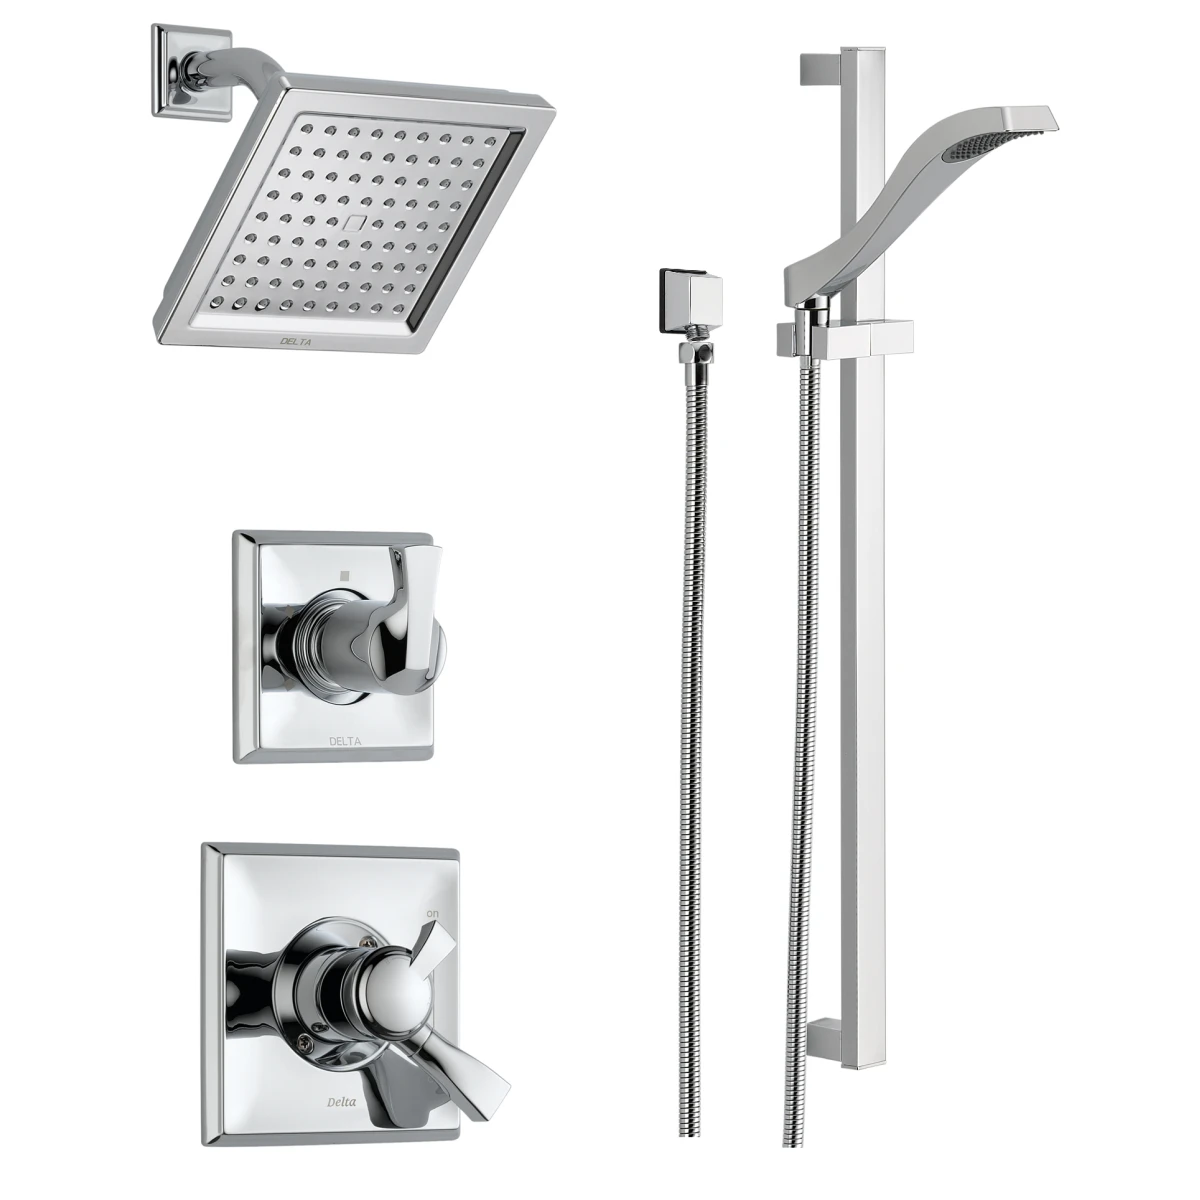 Delta Dss Dryden 1701 Chrome Monitor 17 Series Dual Function